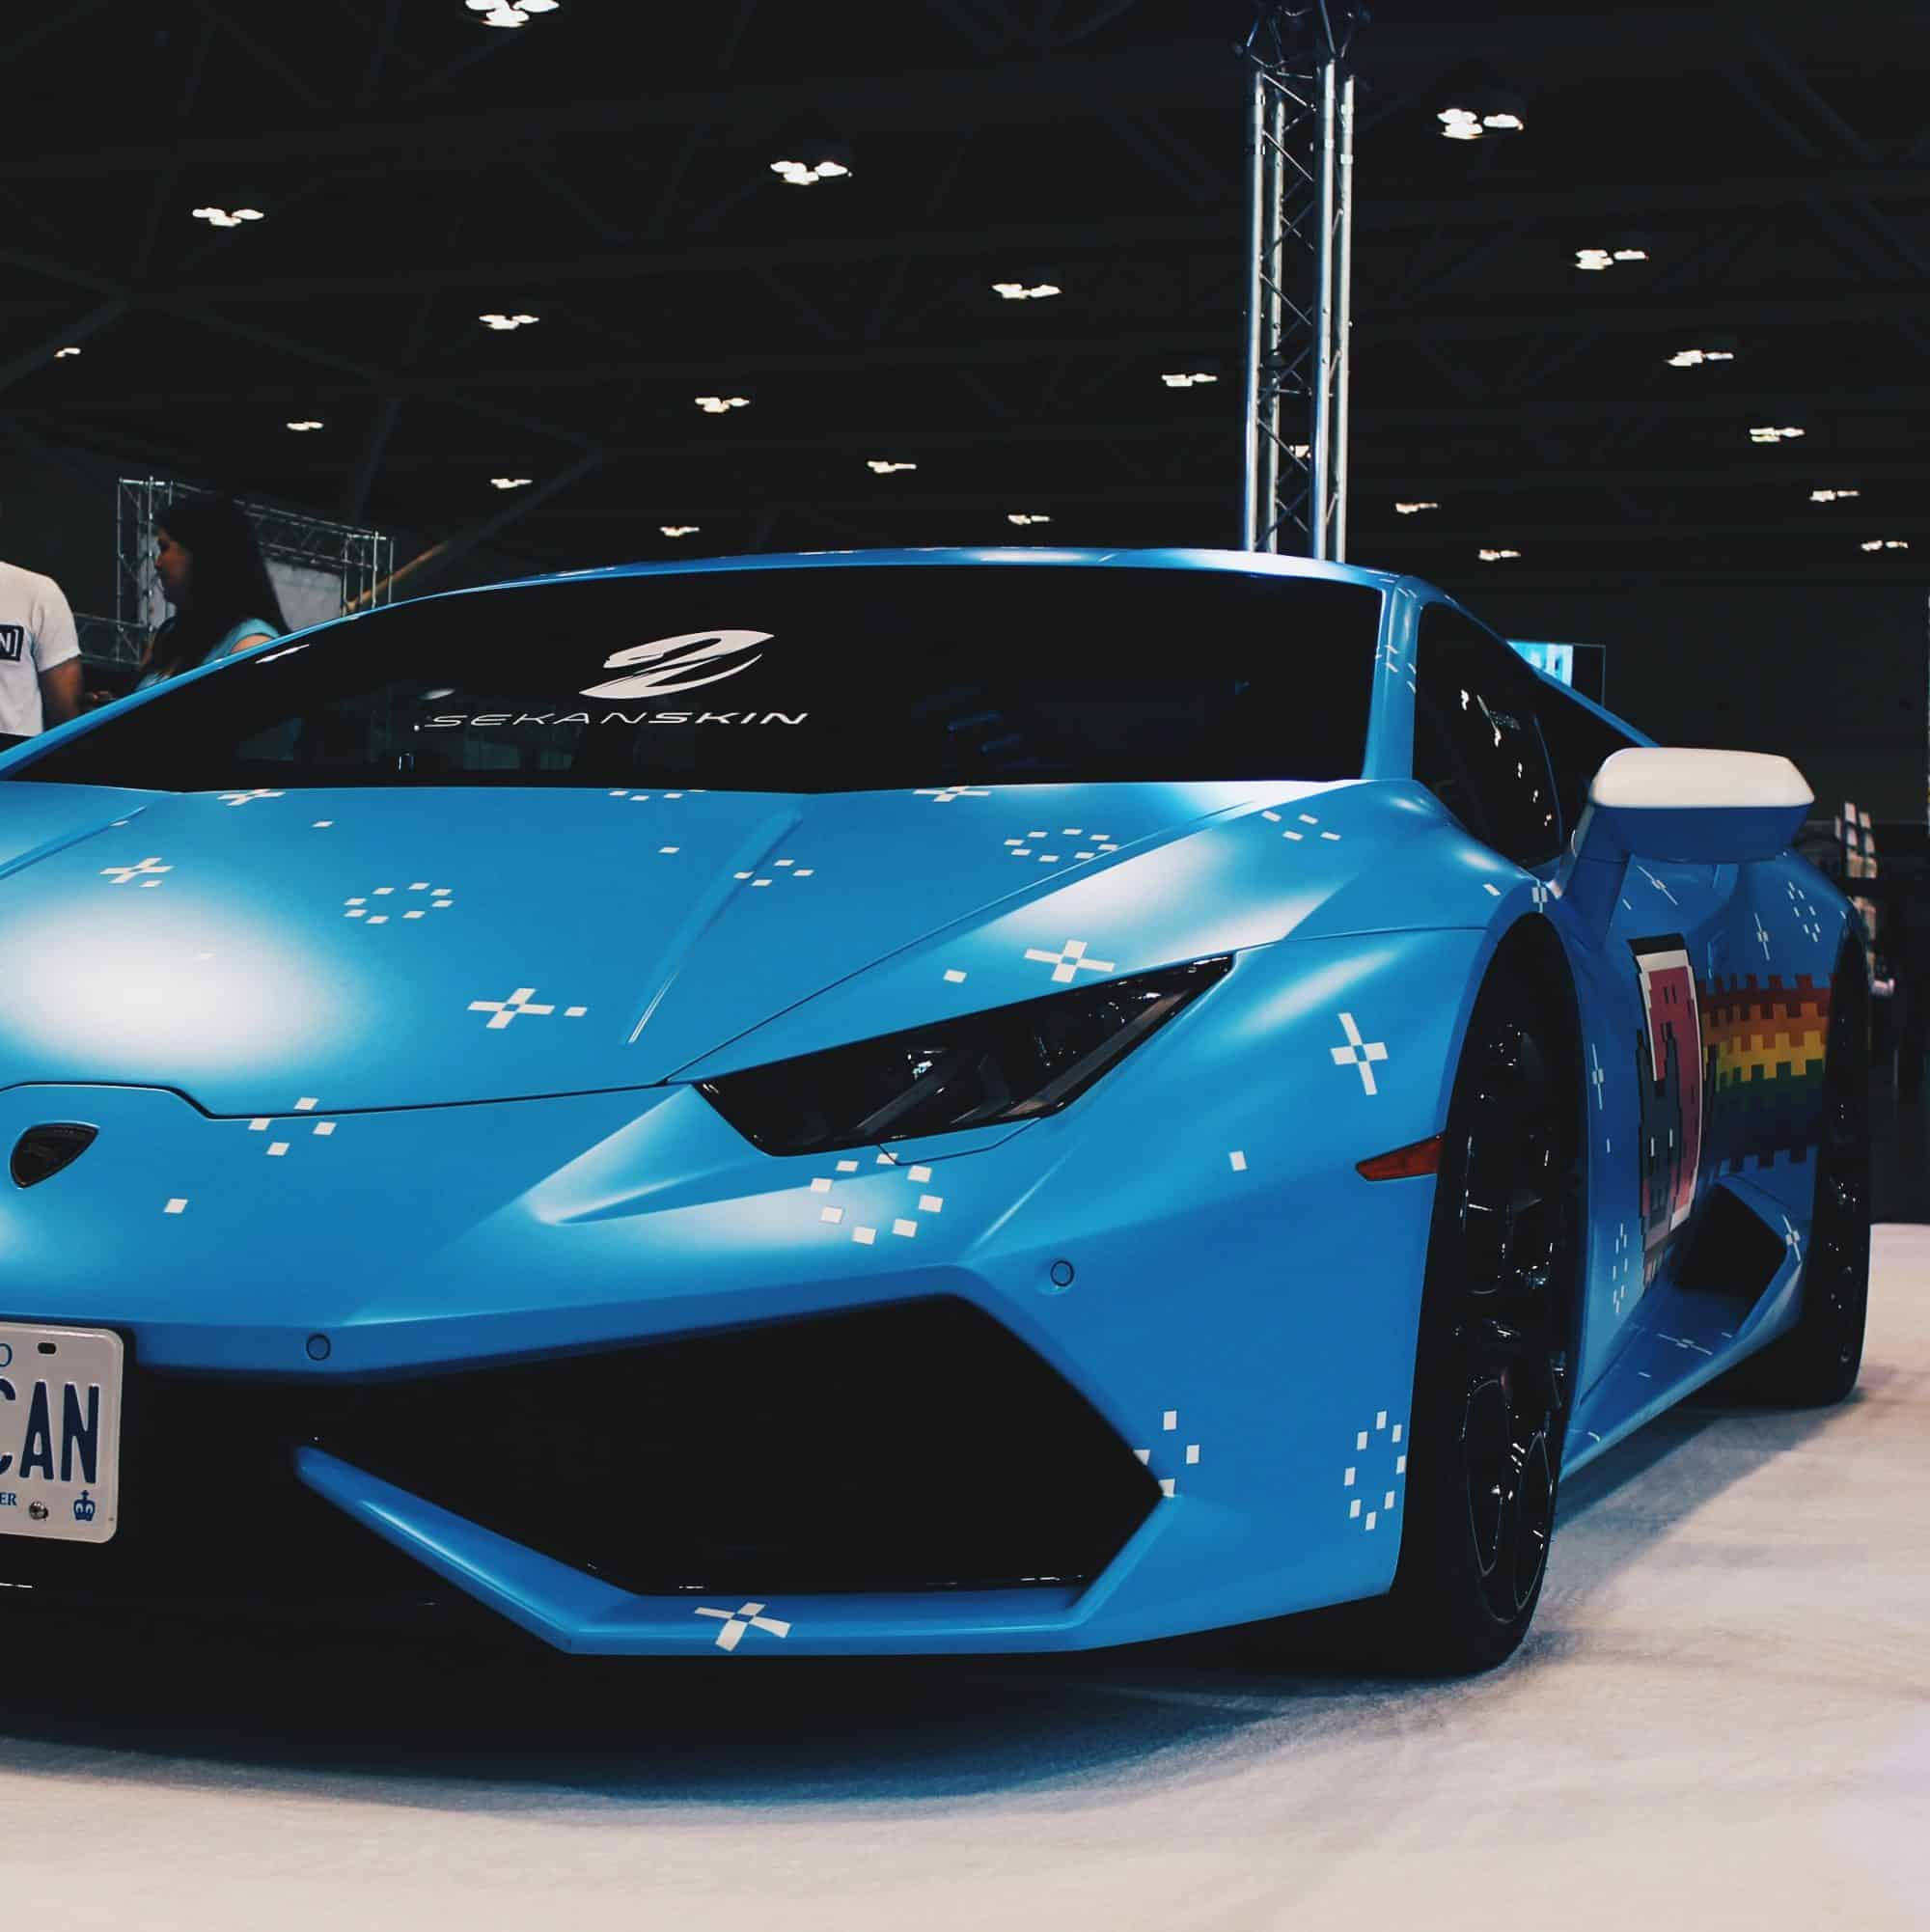 What to Expect for Your First Visit to Importfest Toronto